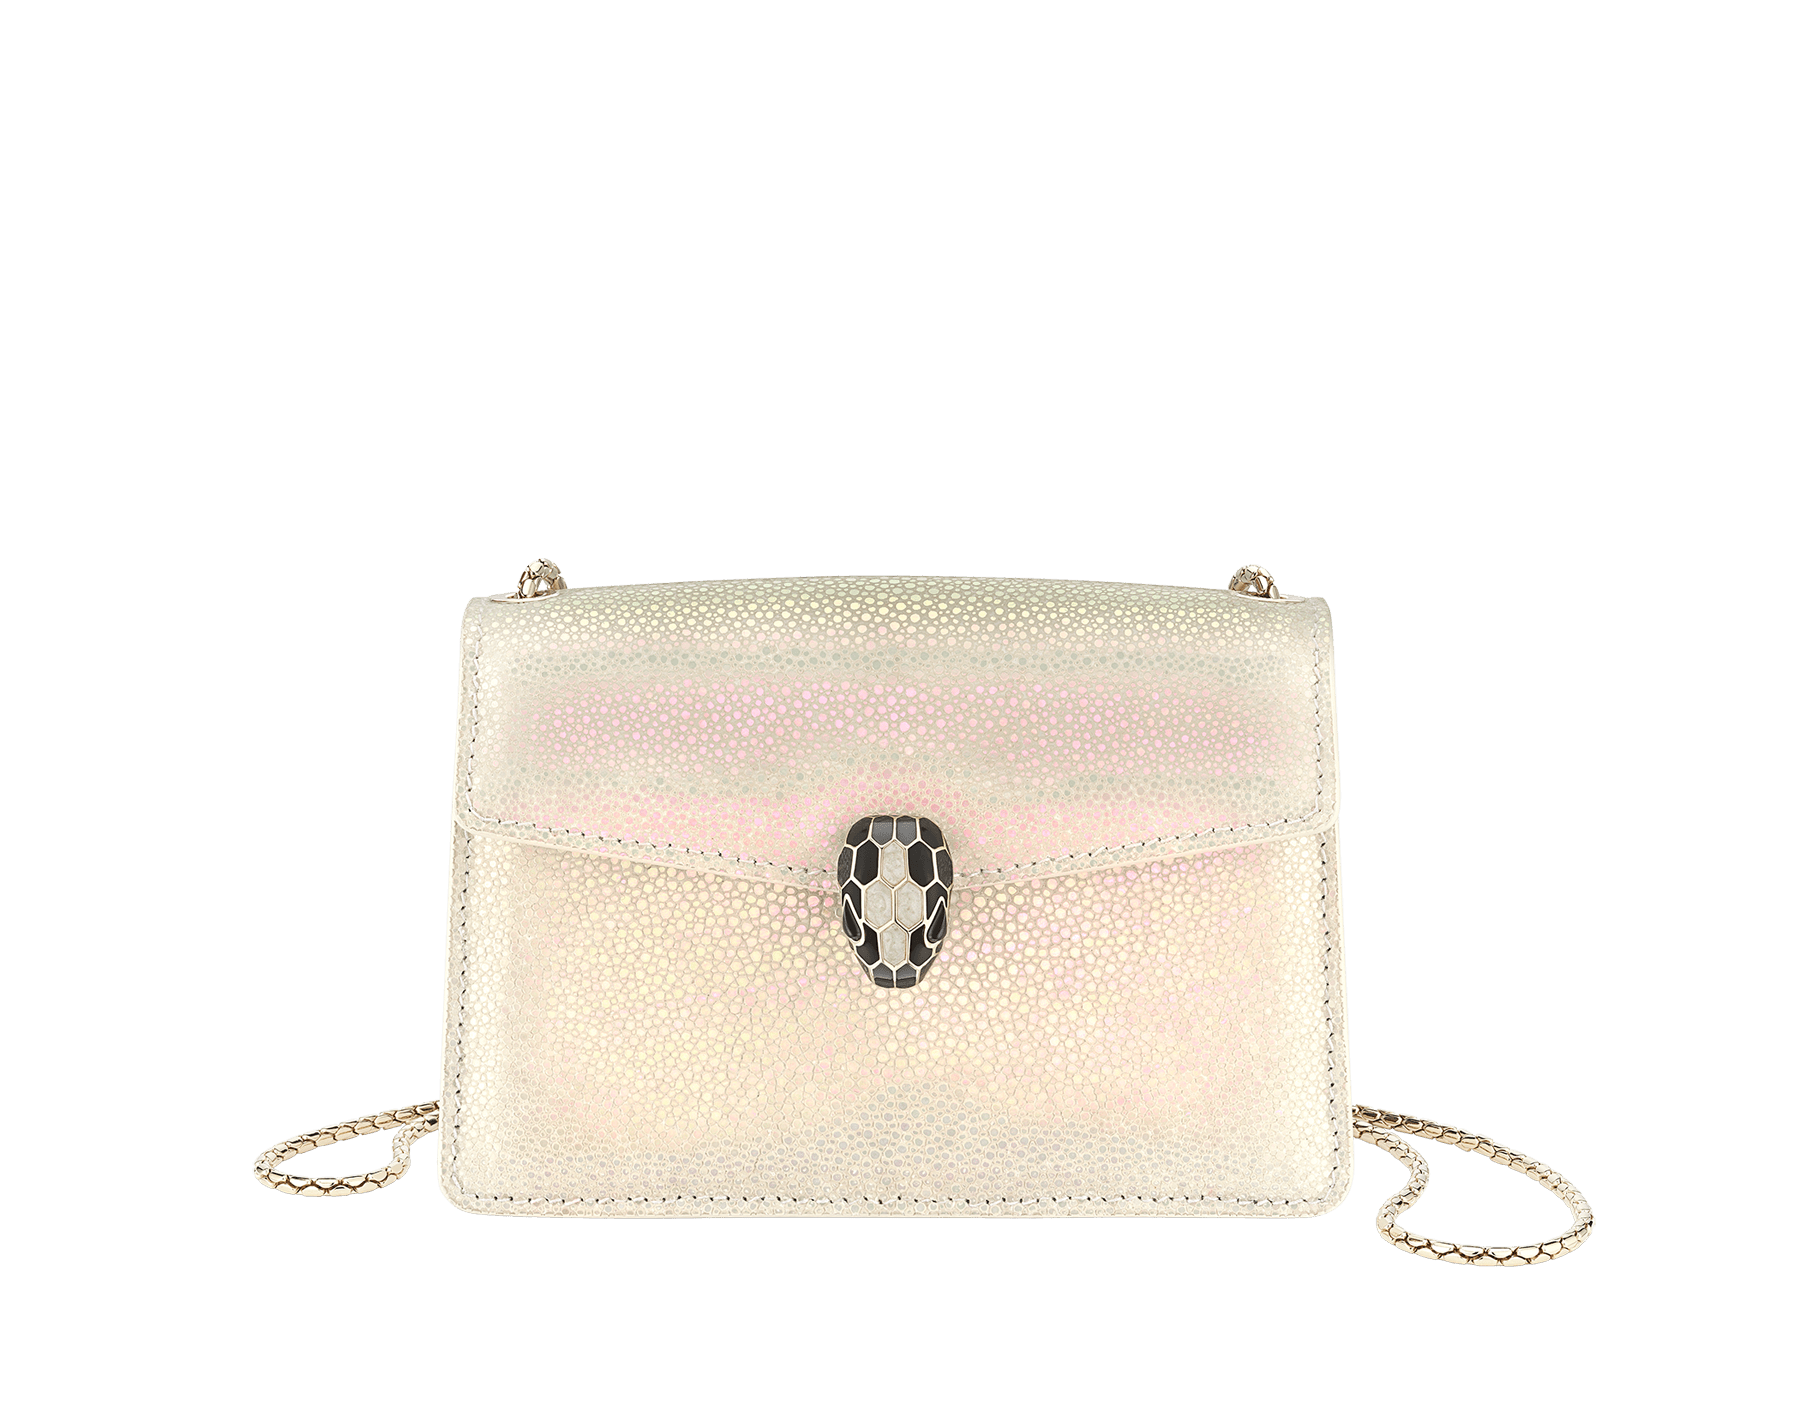 """Serpenti Forever"" mini crossbody bag in pearly, iridescent Milky Opal beige galuchat skin with agate-white calfskin edges and black nappa leather inner lining. Alluring snakehead closure in light gold-plated brass enriched with black and pearly, agate-white enamel and black onyx eyes. 289938 image 1"